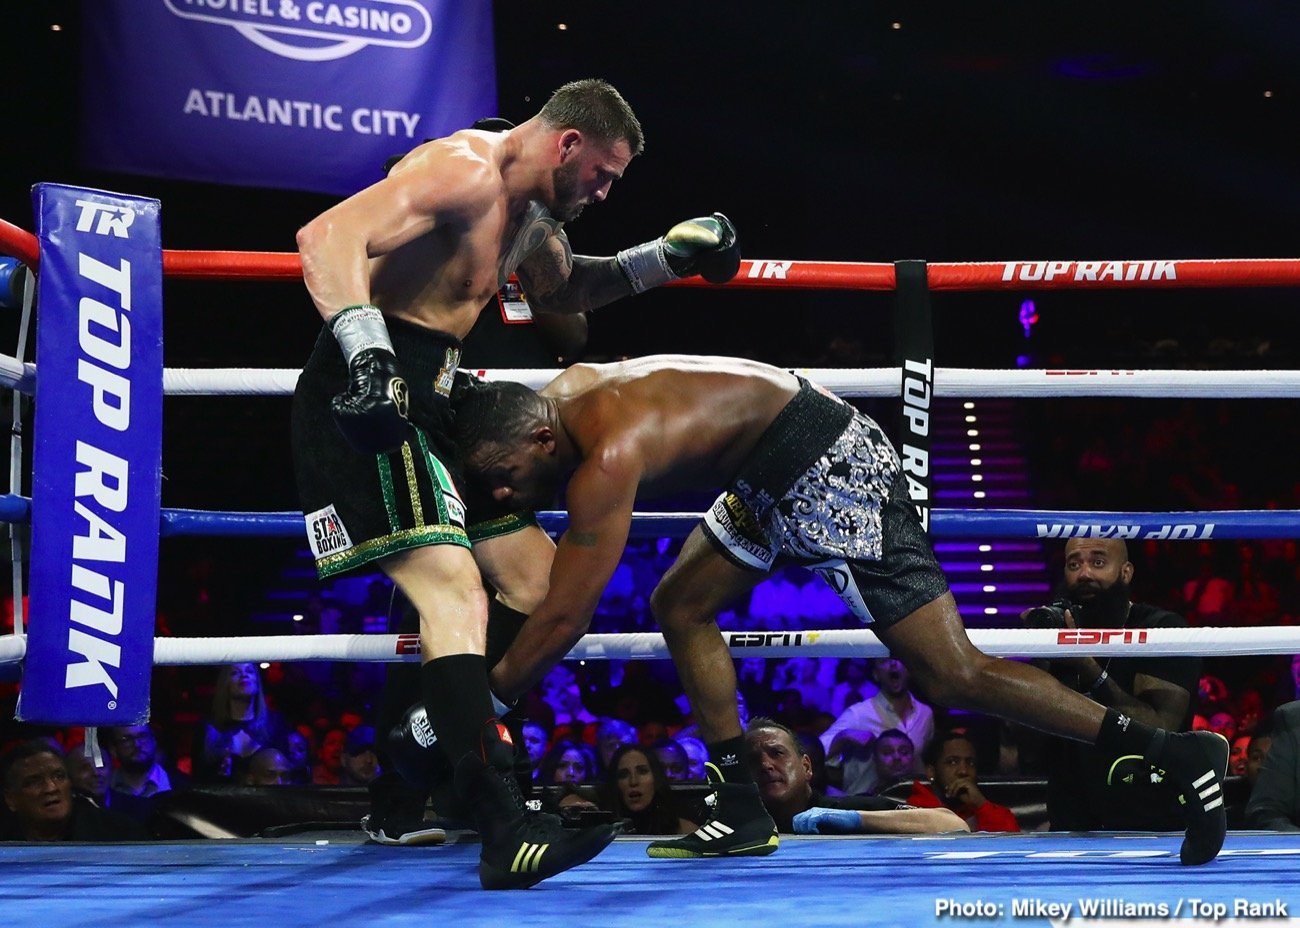 Jesse Hart, Joe Smith Jr. - Two tough, determined and especially motivated light-heavyweights gave us a terrific action fight last night in Atlantic City. Joe Smith Jr, best known for being the man who ended the long and ultra-distinguished career of all-time great Bernard Hopkins, defeated Hopkins' protege Jesse Hart over ten all-action rounds.